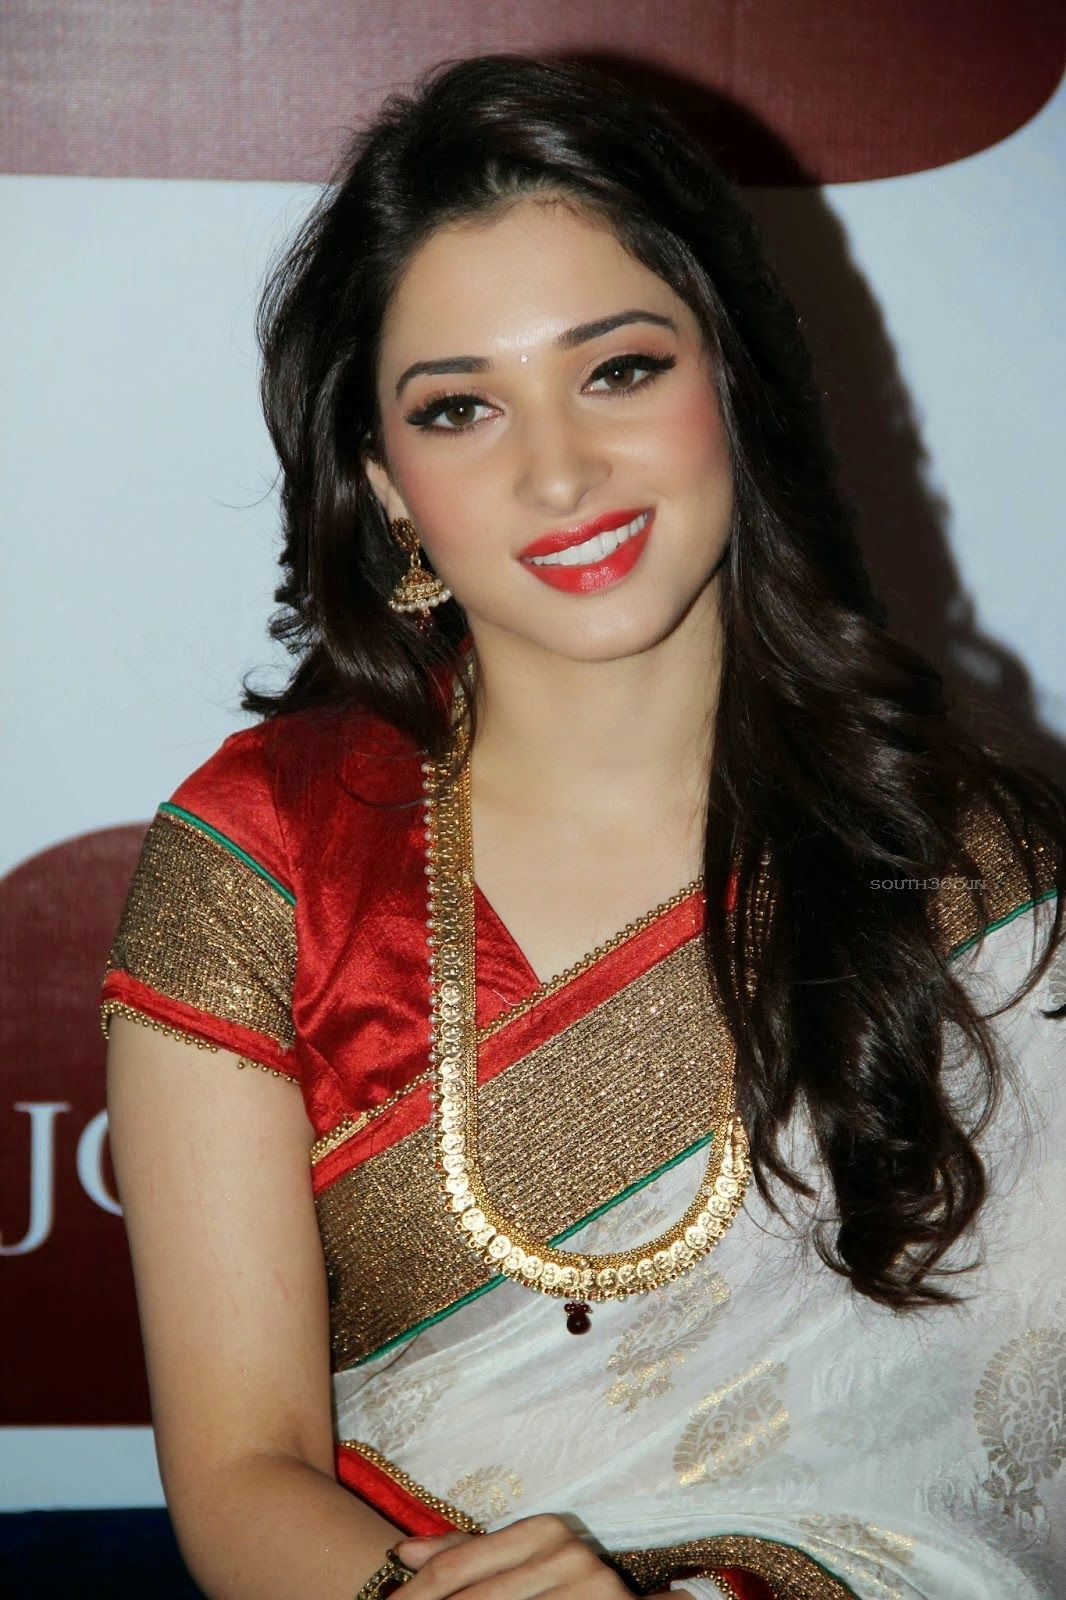 Top 50 Tamanna Bhatia Wallpapers Photos Images And Pics Abi